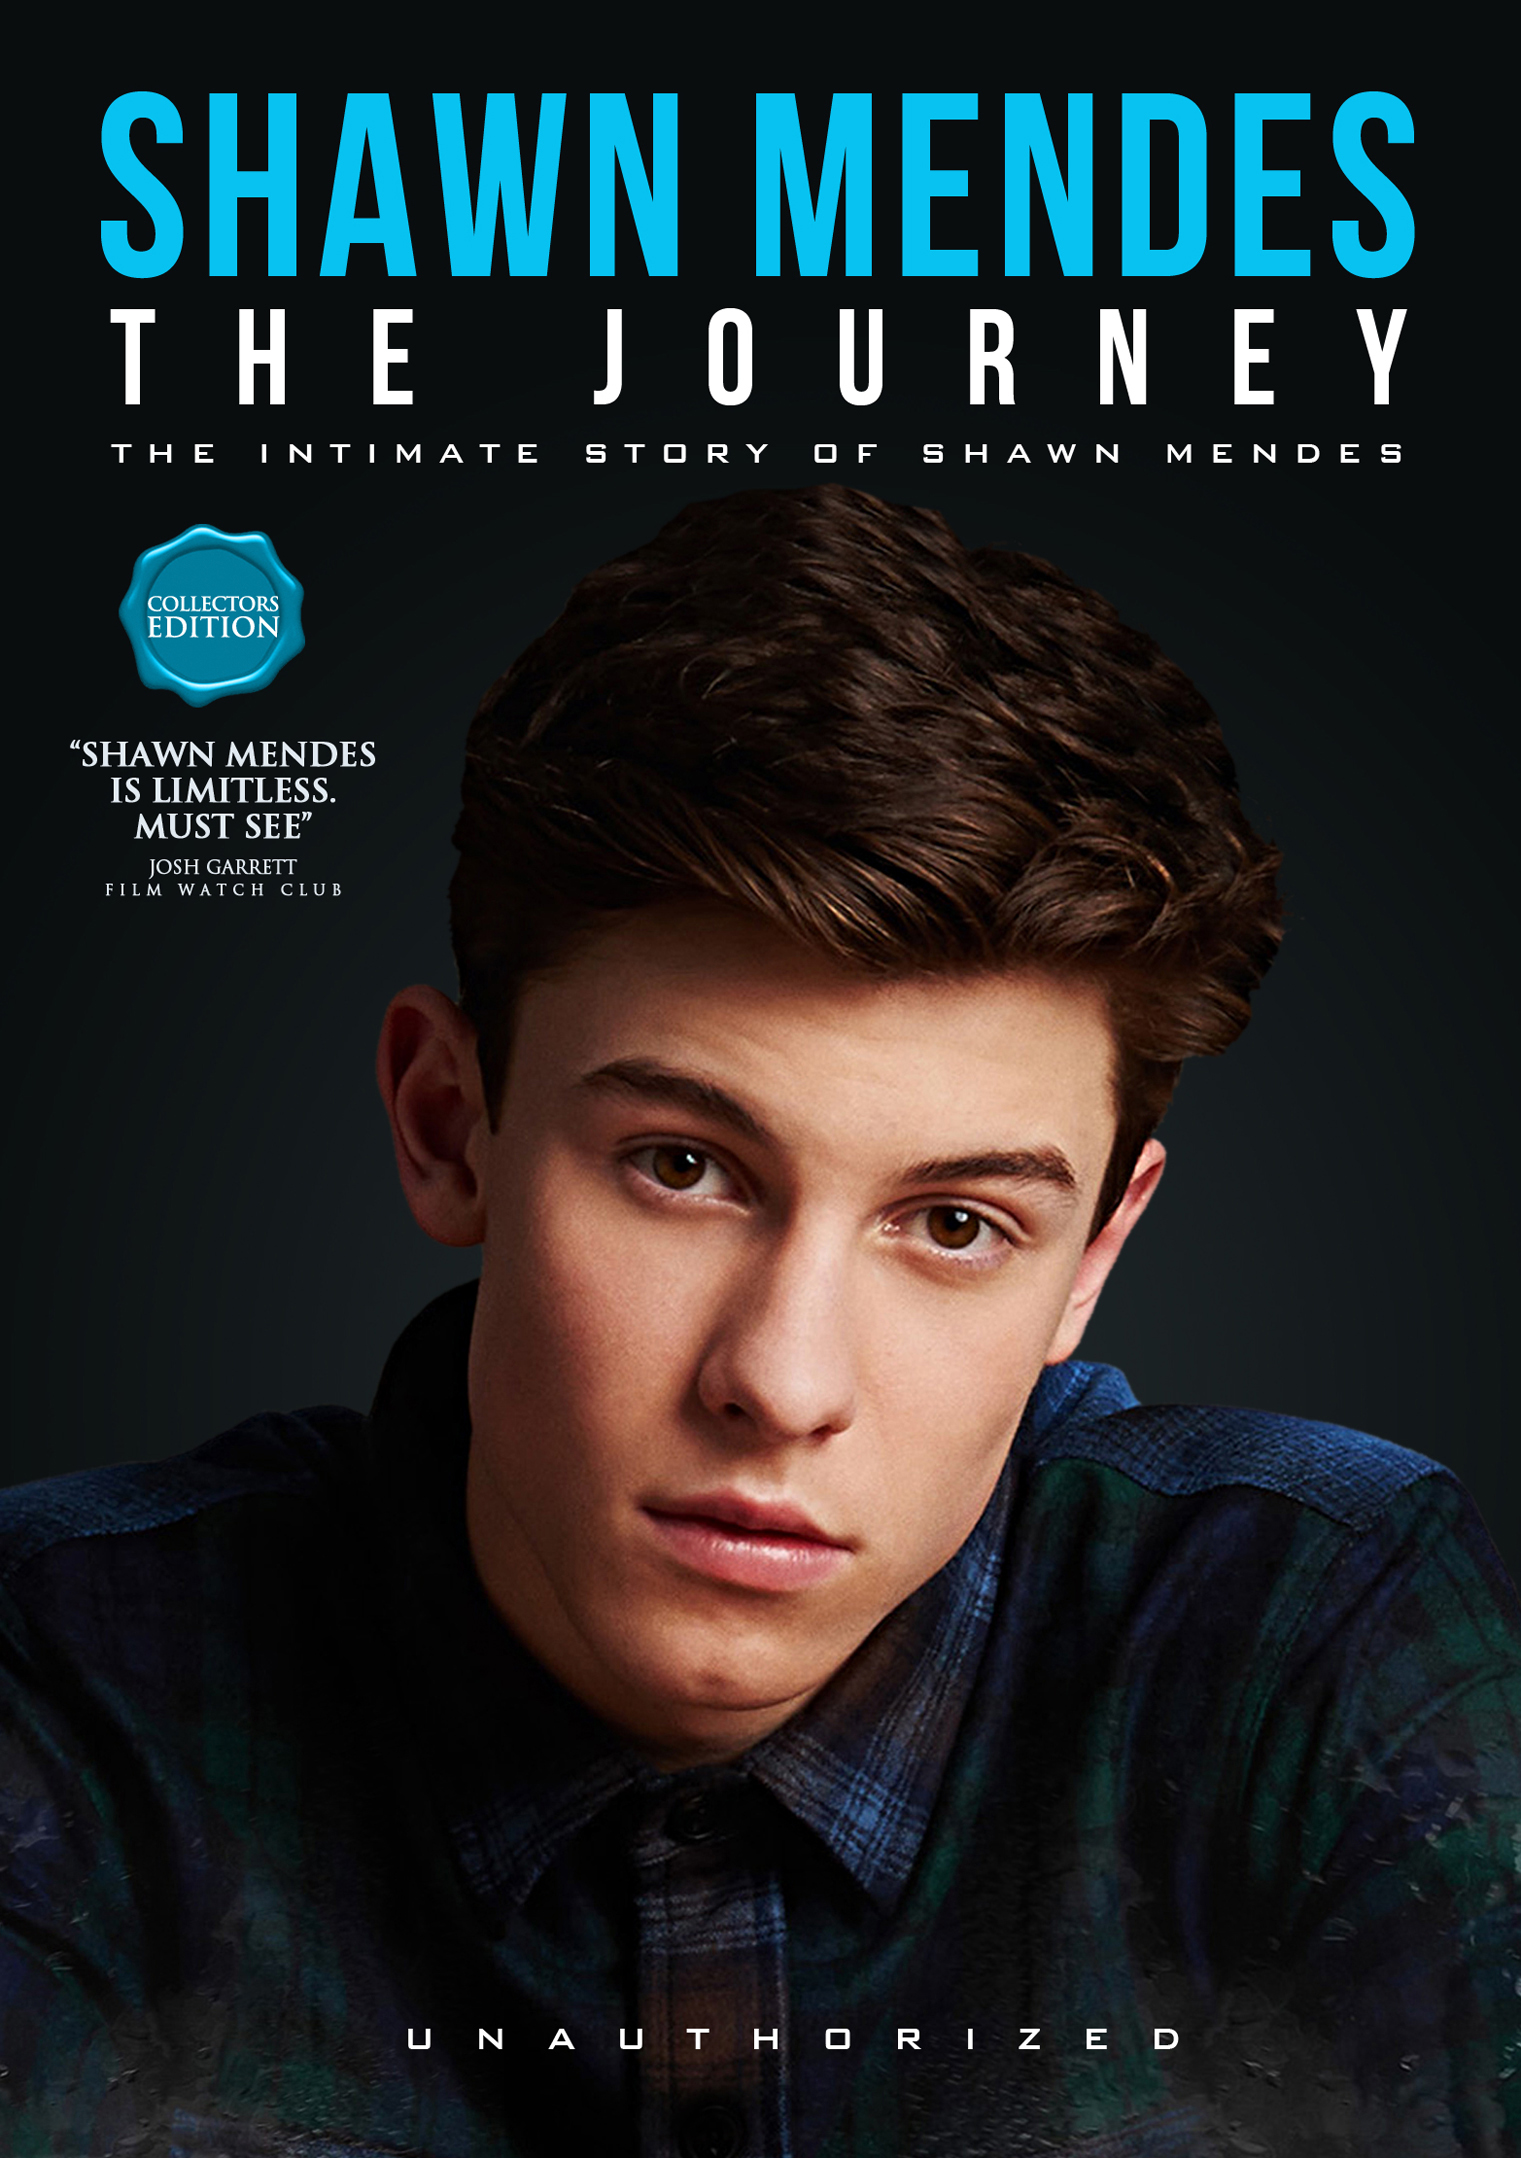 Shawn Mendes The Journey MVD Entertainment Group B2B